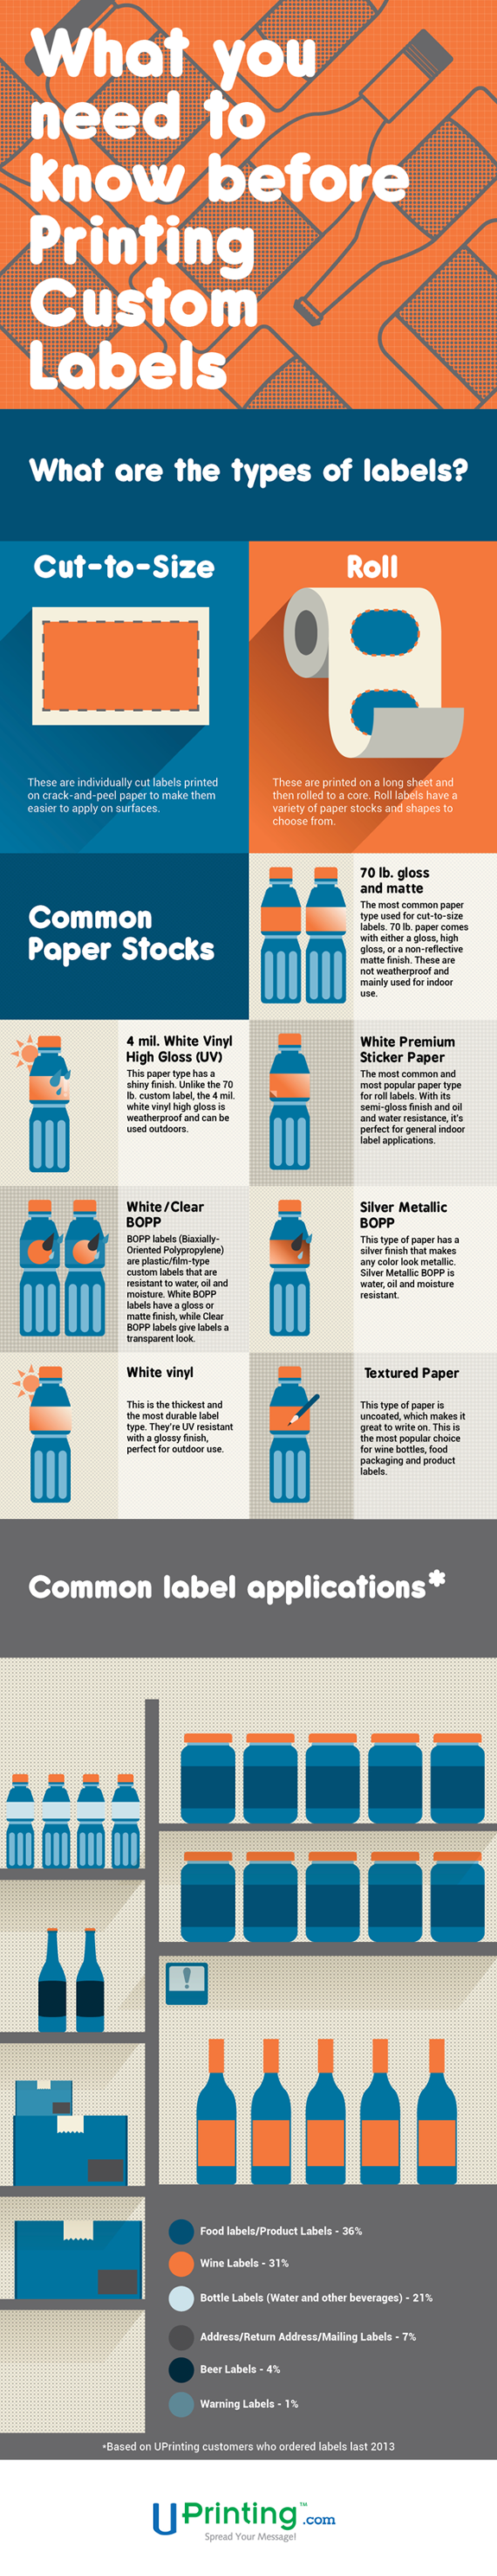 A Visual Guide for Printing Custom Labels Infographic